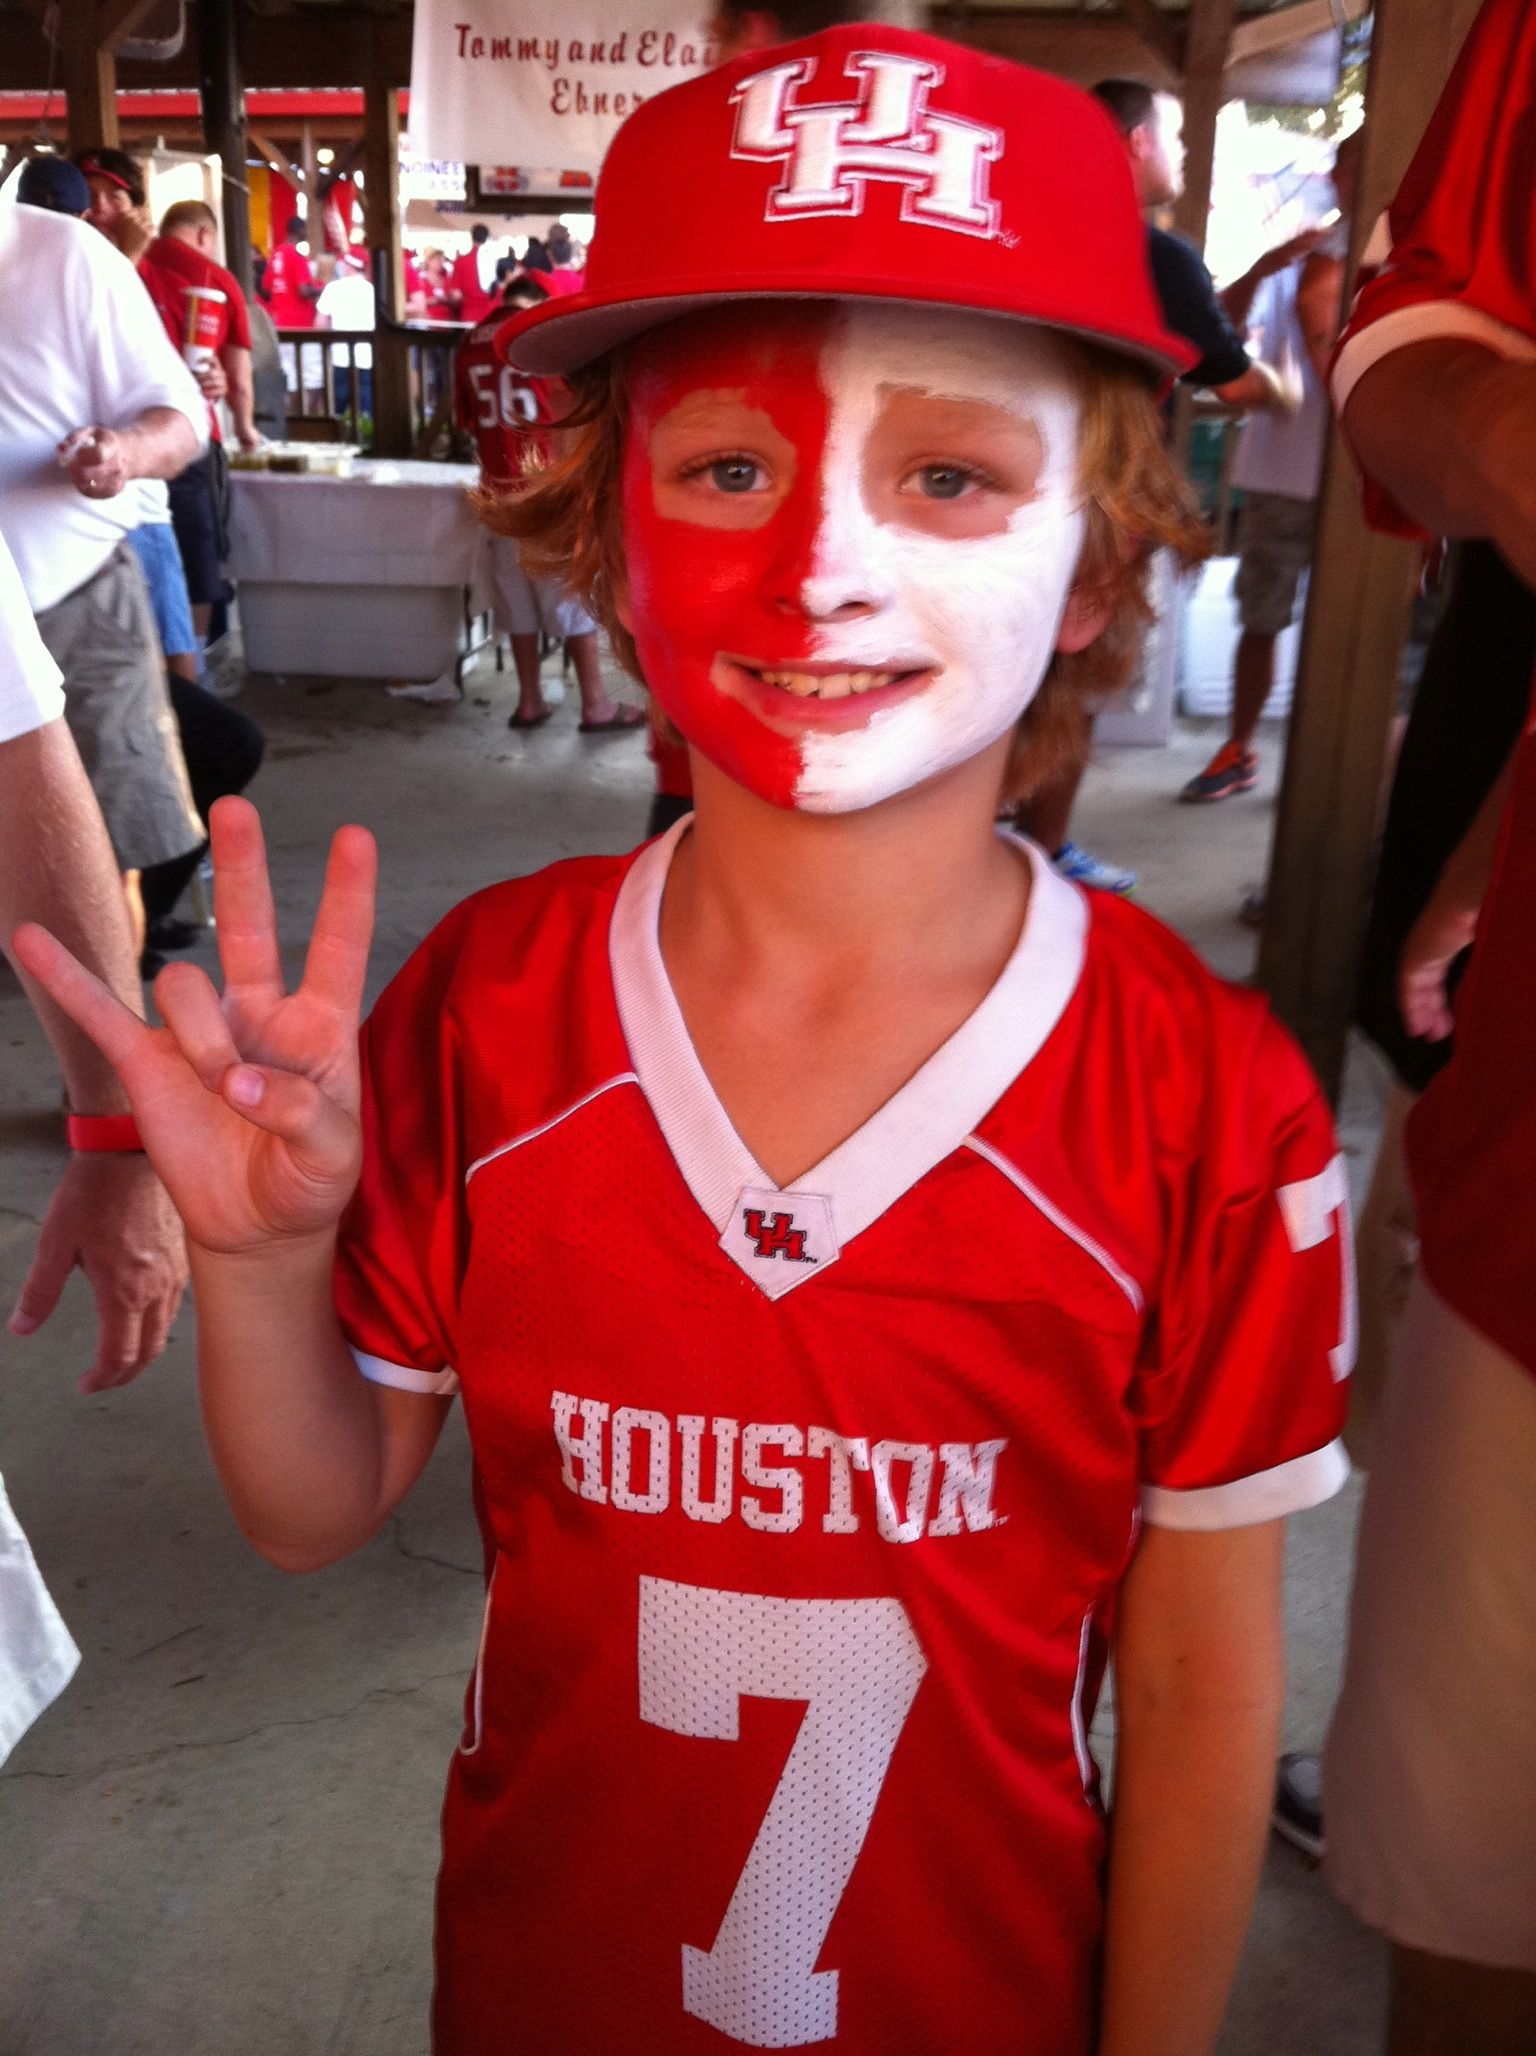 Houston cougar pride face paint for the uh coogs football for Cheap face painting houston